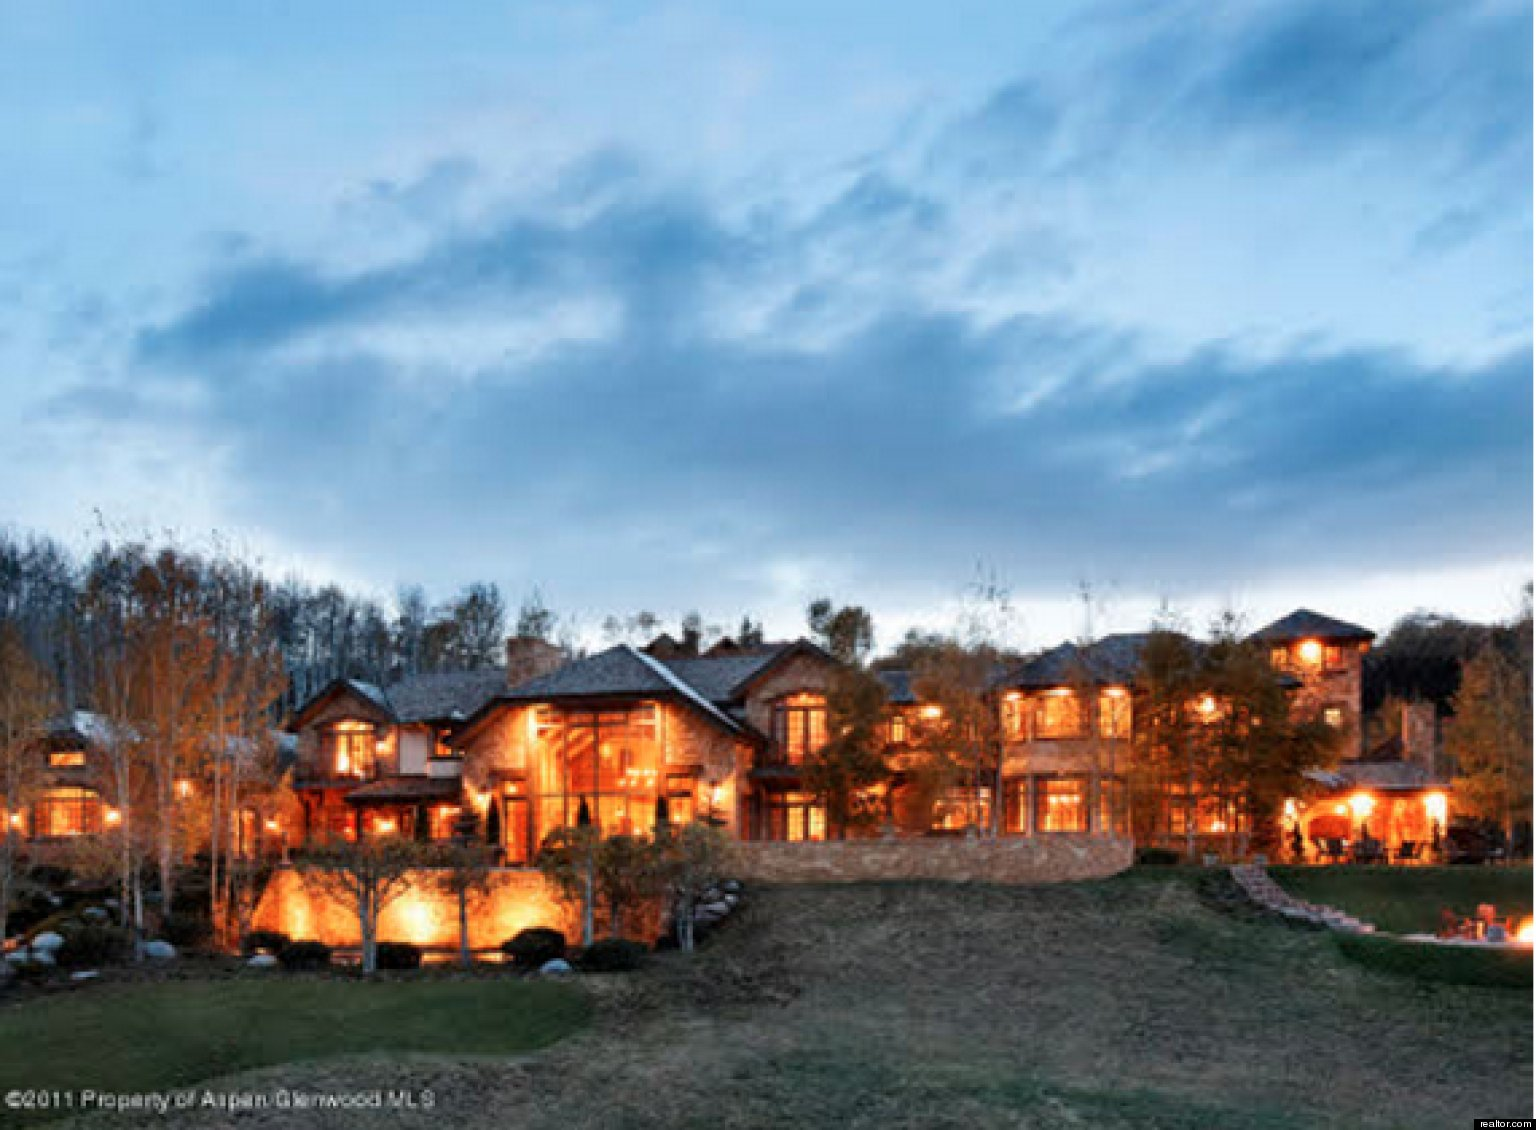 Top 10 most expensive homes in aspen colo in 2013 for Most expensive homes in colorado